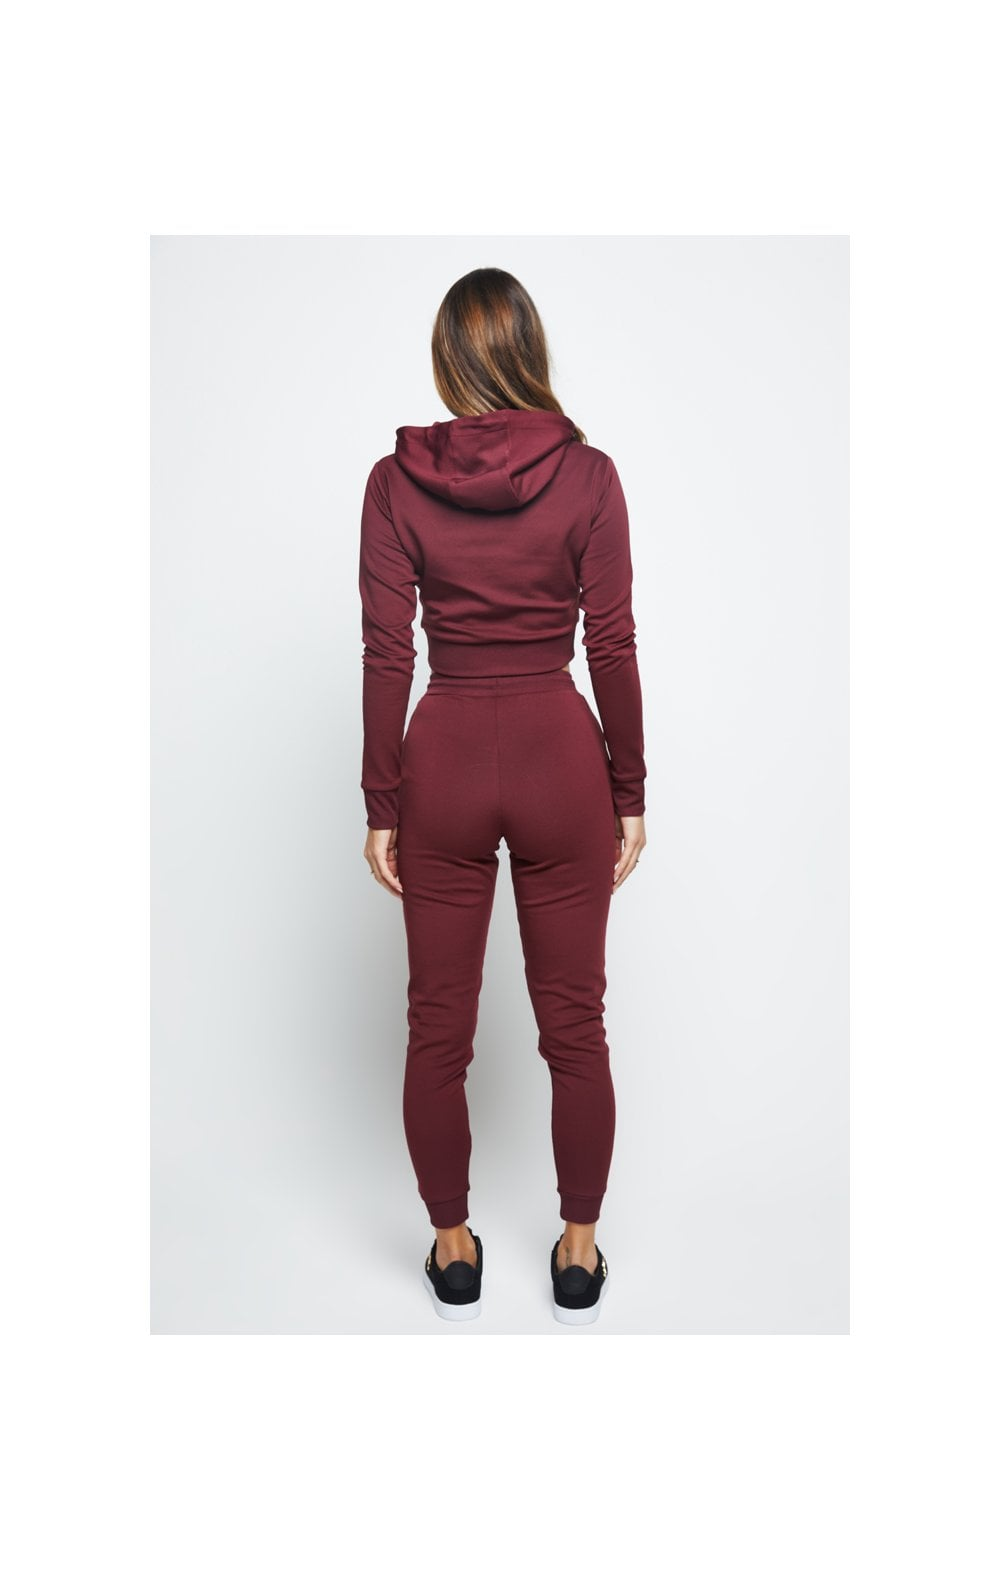 SikSilk Eyelet Mesh Track Top - Burgundy (6)